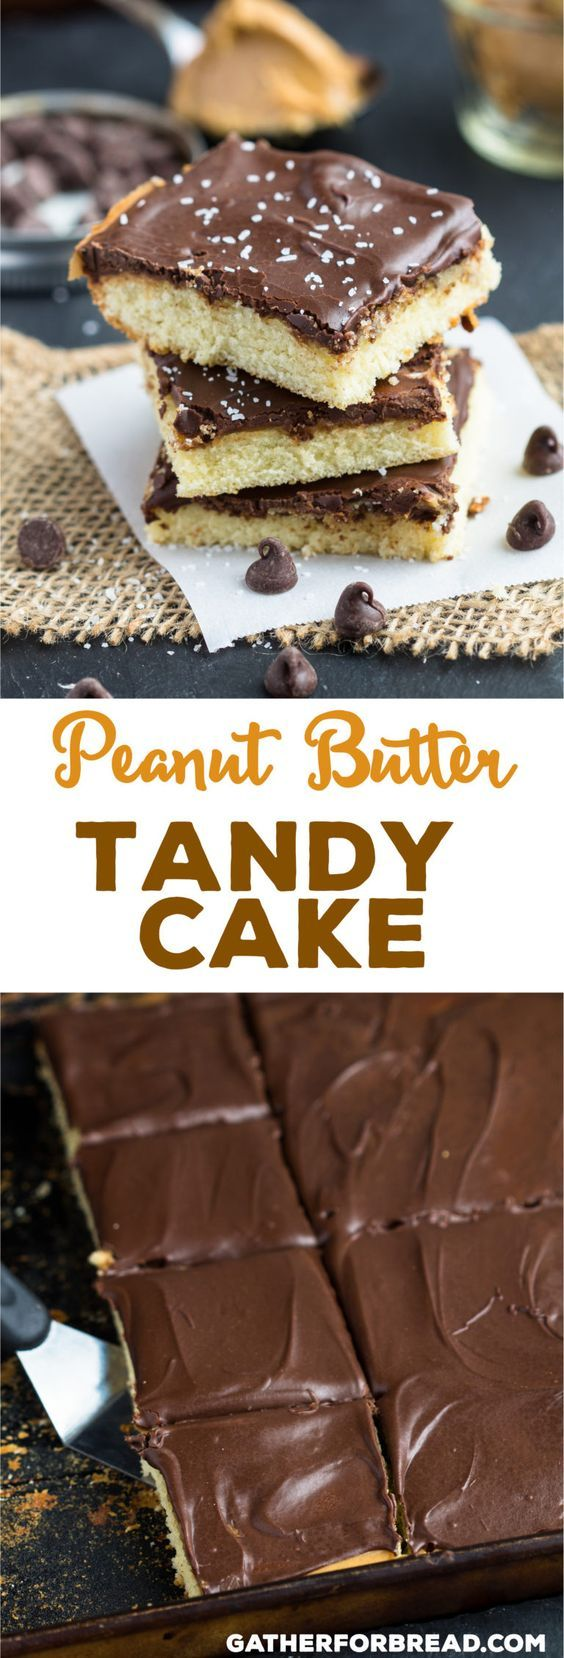 Peanut Butter Tandy Cake